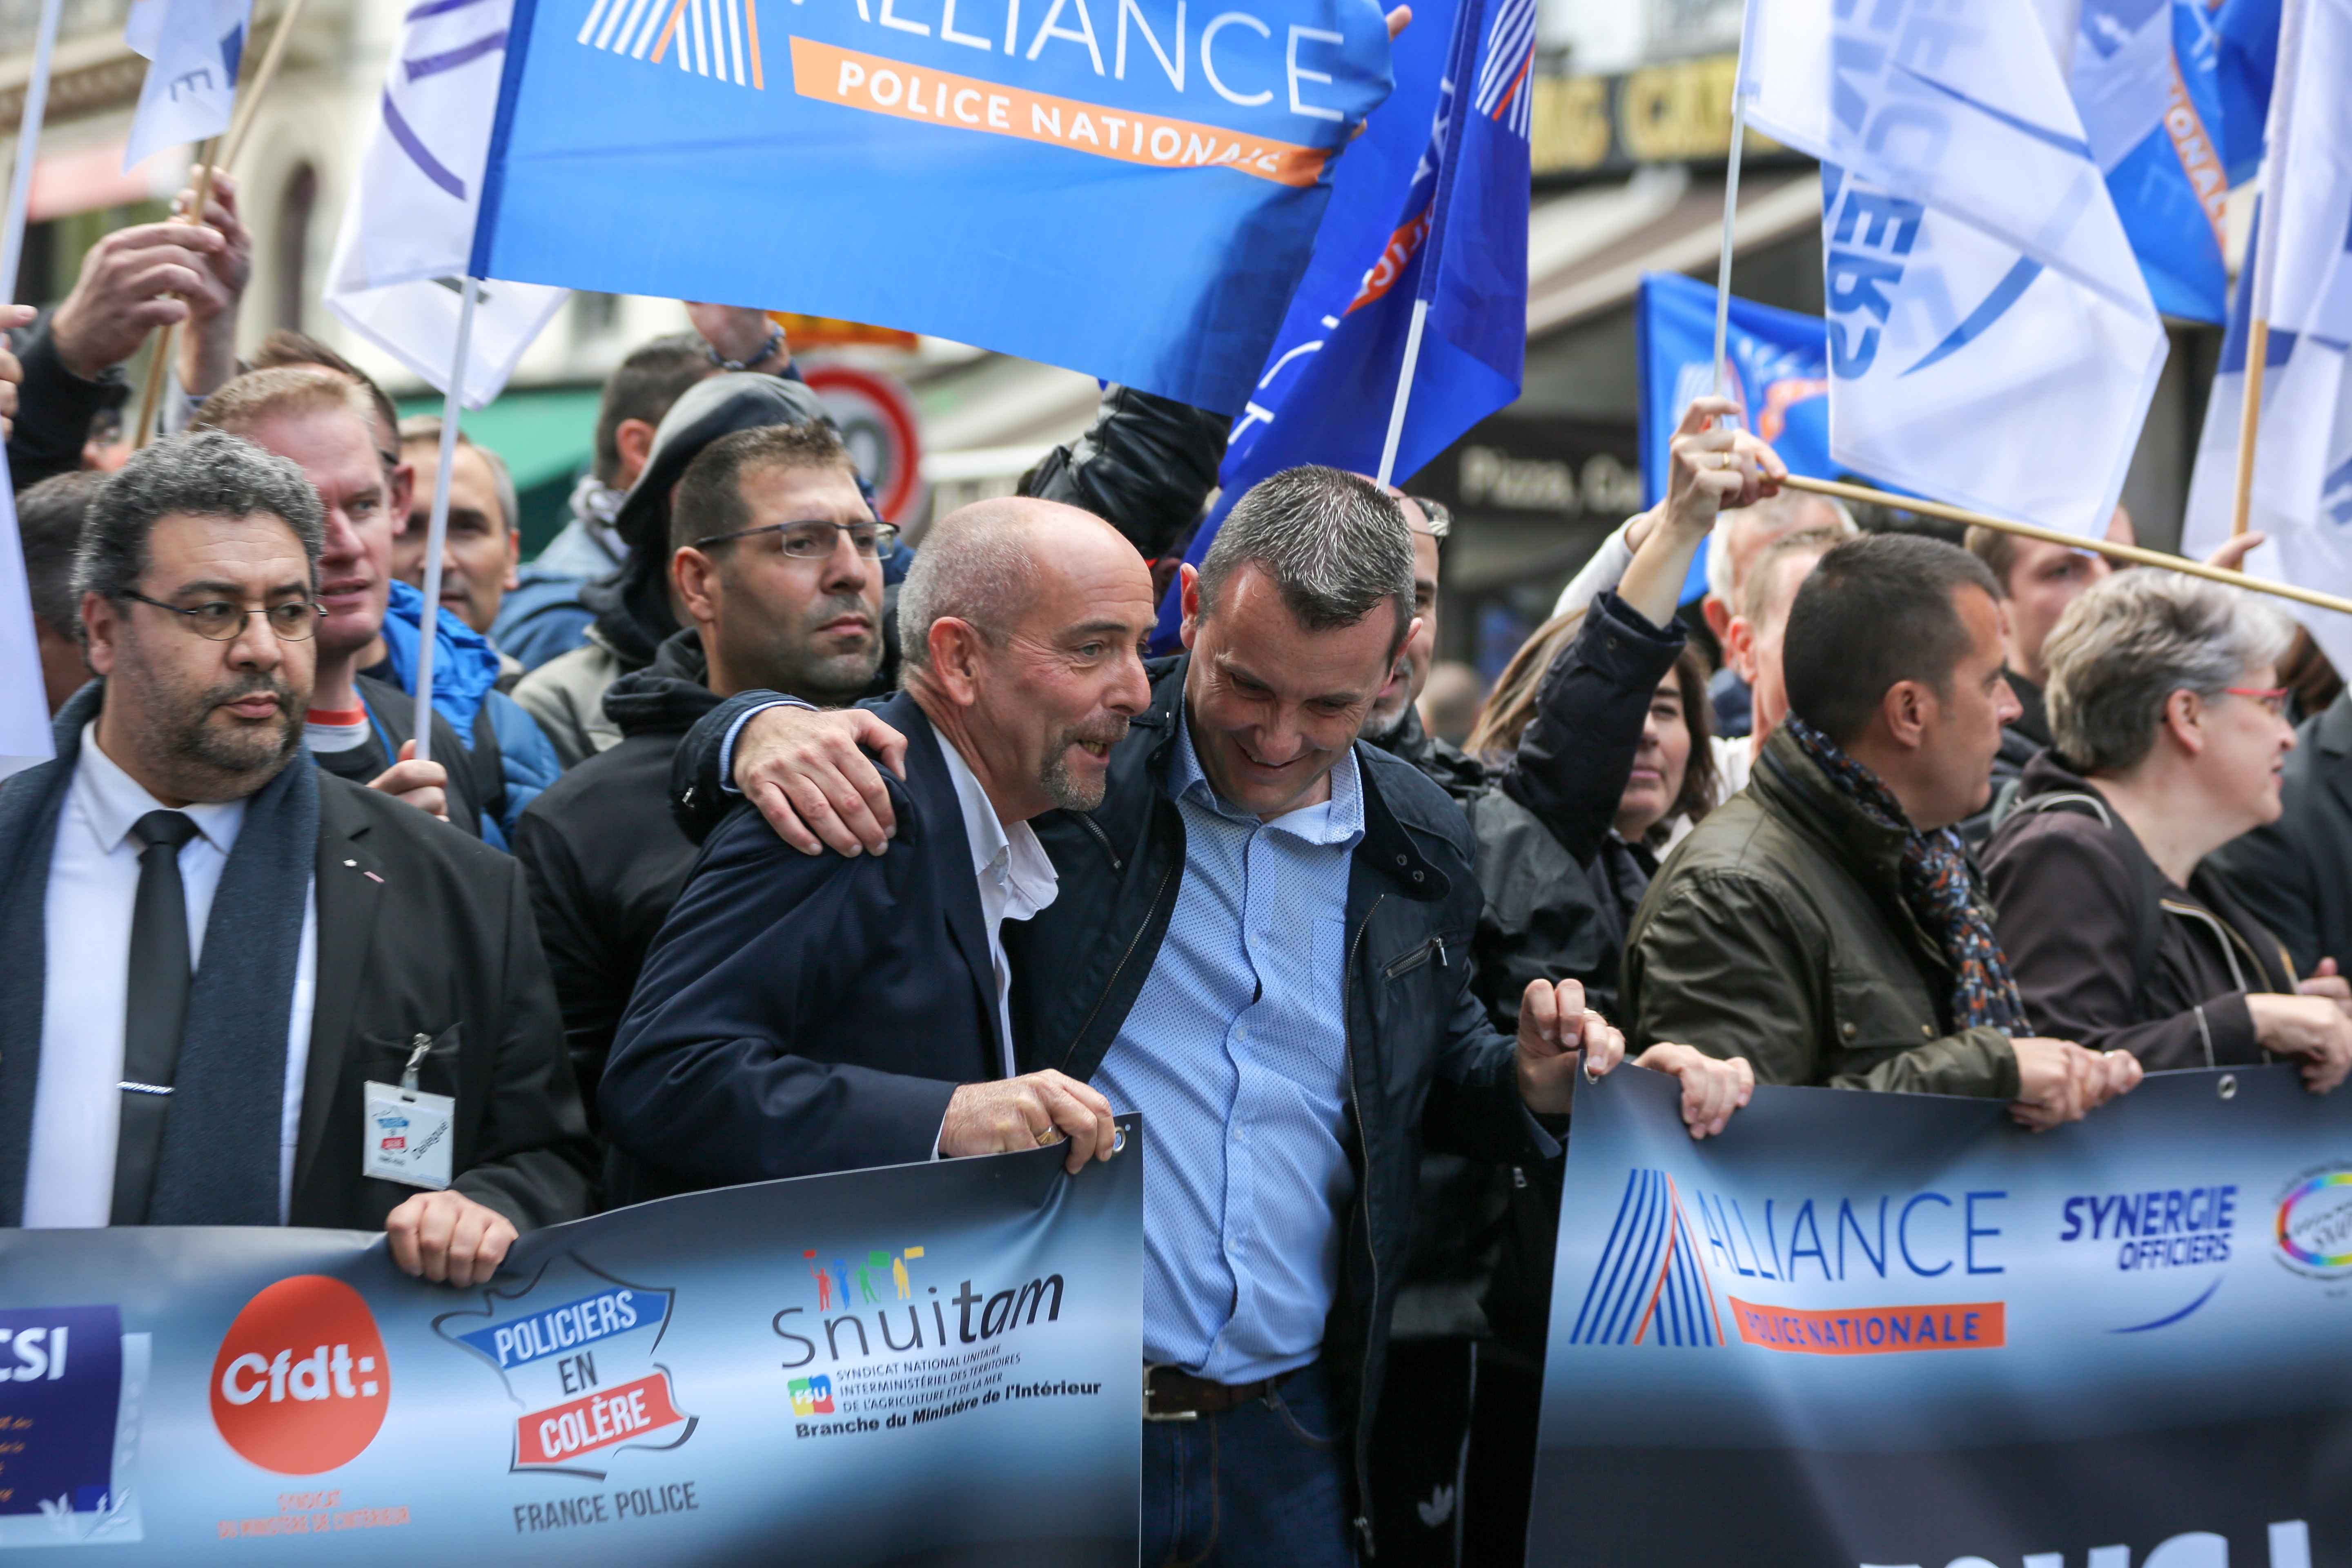 Yves Lefebvre (3L), general secretary of the Unite SGP-Police union, speaks with Fabien Vanhemelryck(4L), Secretary General of the Alliance-Police Nationale Union, during the ''Walk of Wrath'' of the Policemen in Paris on October 2, 2019. At the call of th